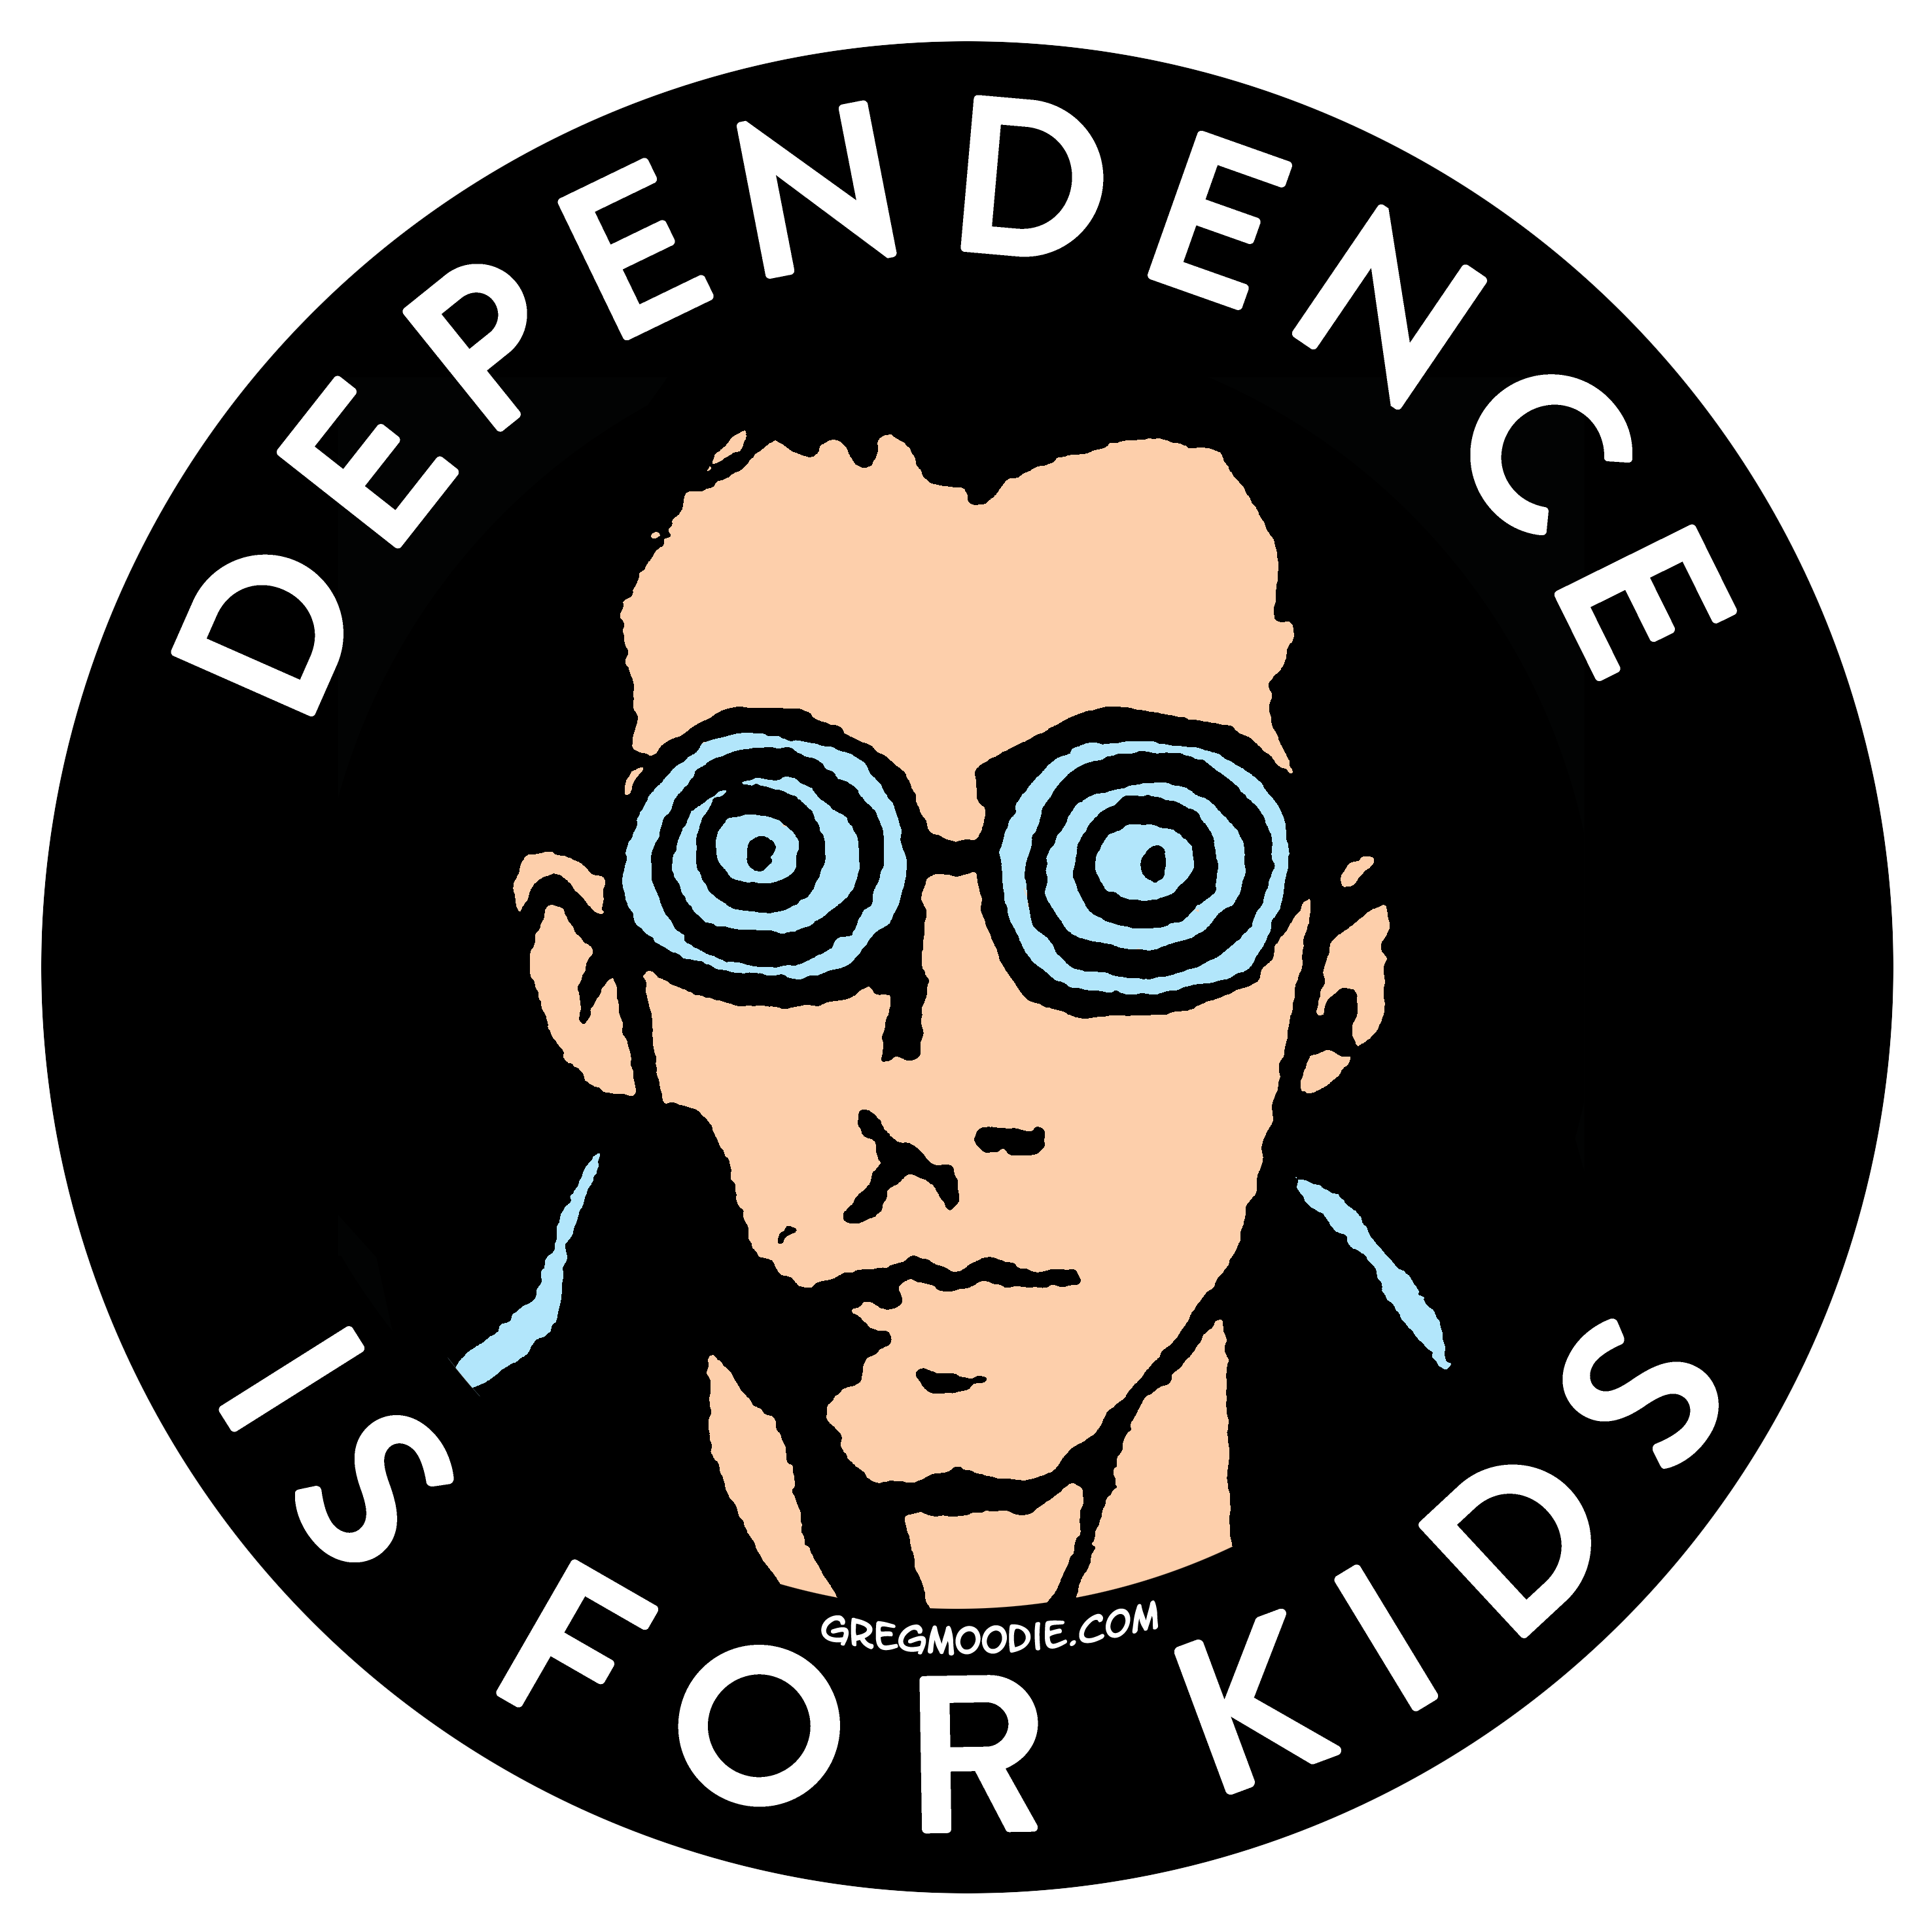 Dependence Is For Kids